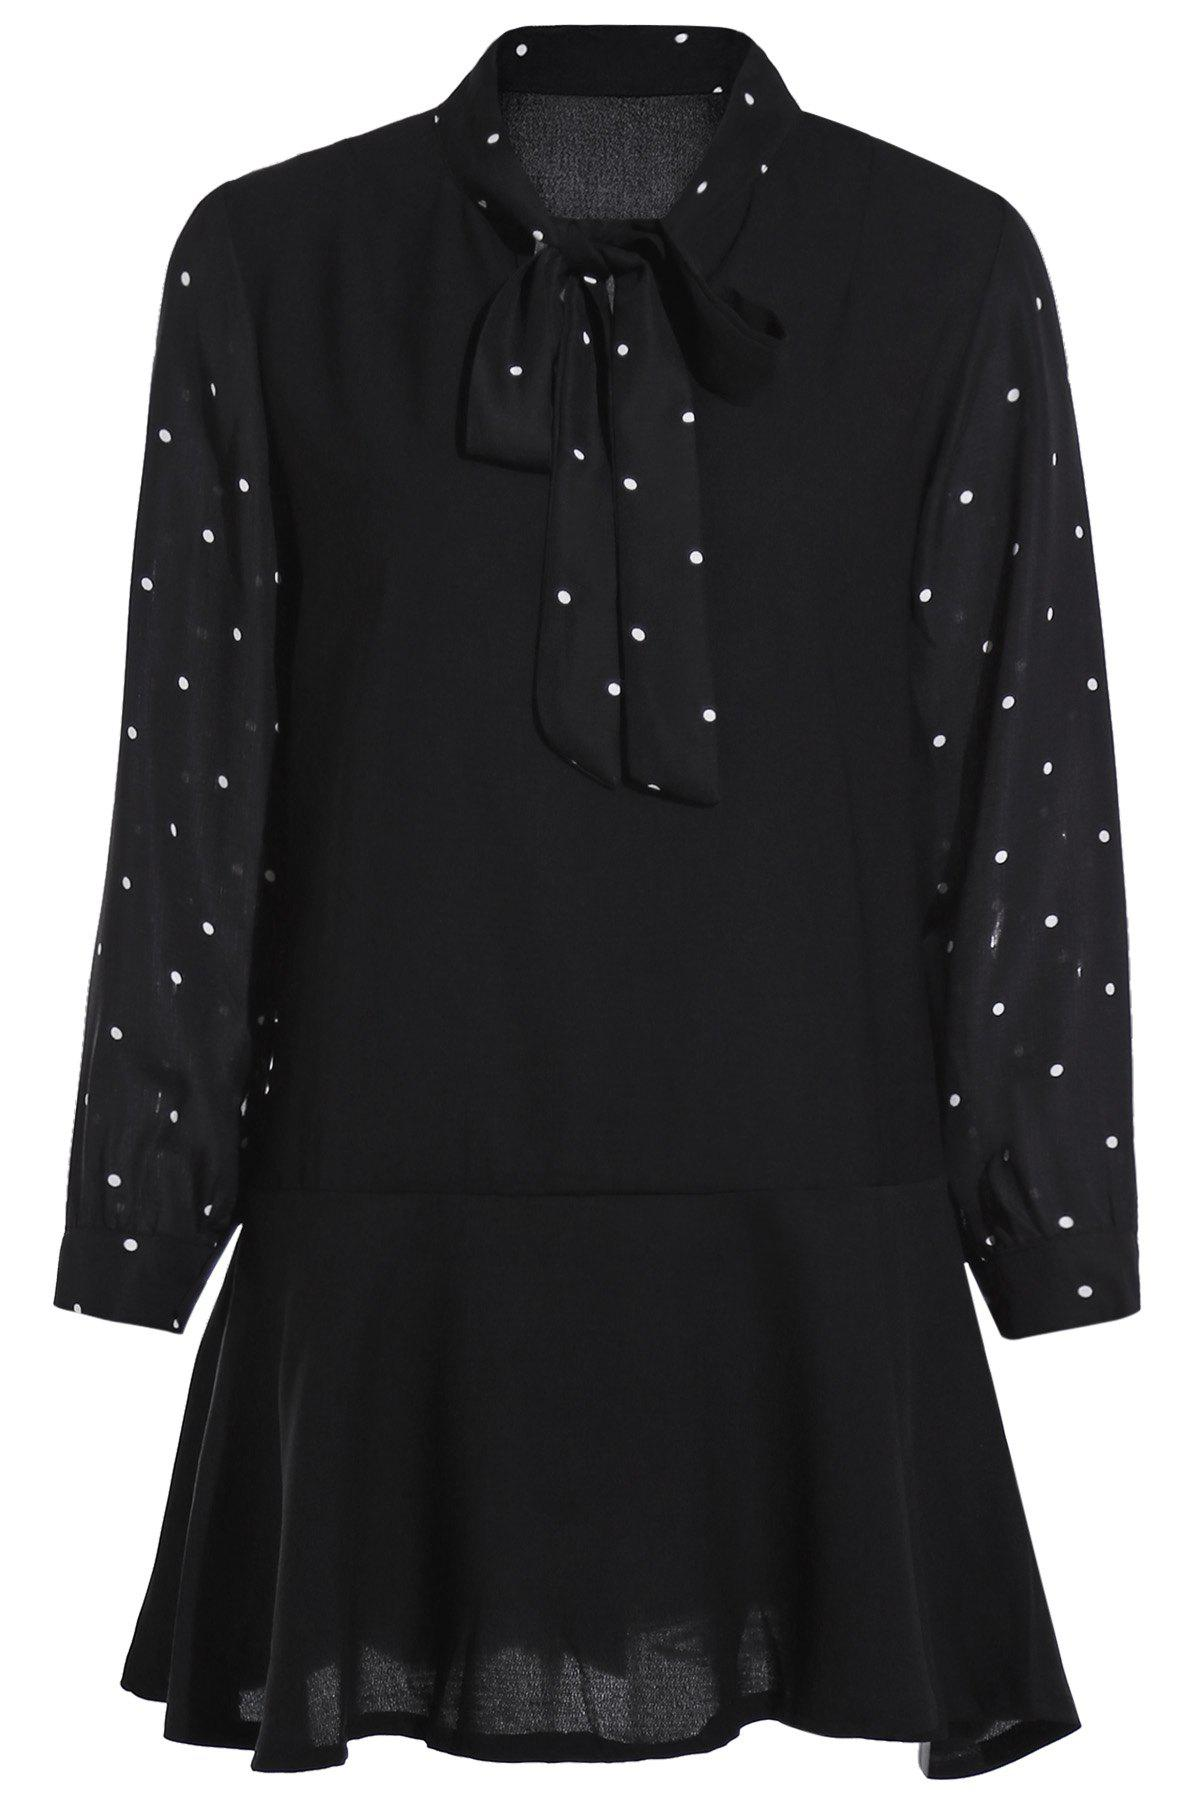 Polka Dot Self Tie Long Sleeve Dress - BLACK ONE SIZE(FIT SIZE XS TO M)